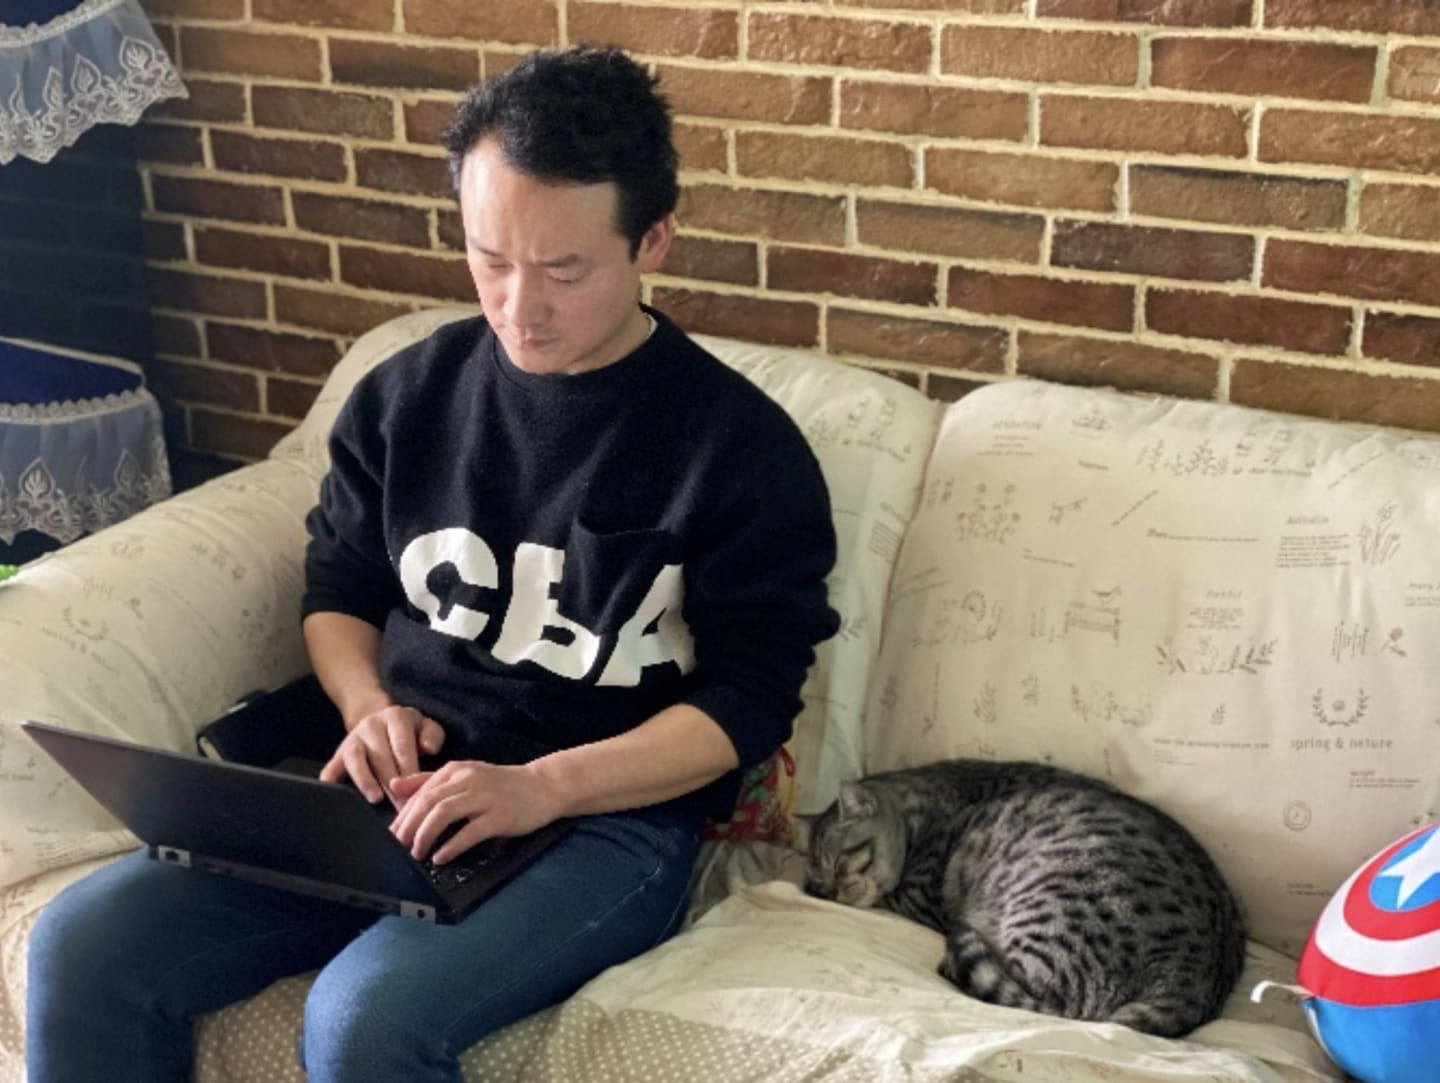 Man working from home on laptop next to pet cat, work from home, remote working, home office, China, Wuhan, coronavirus